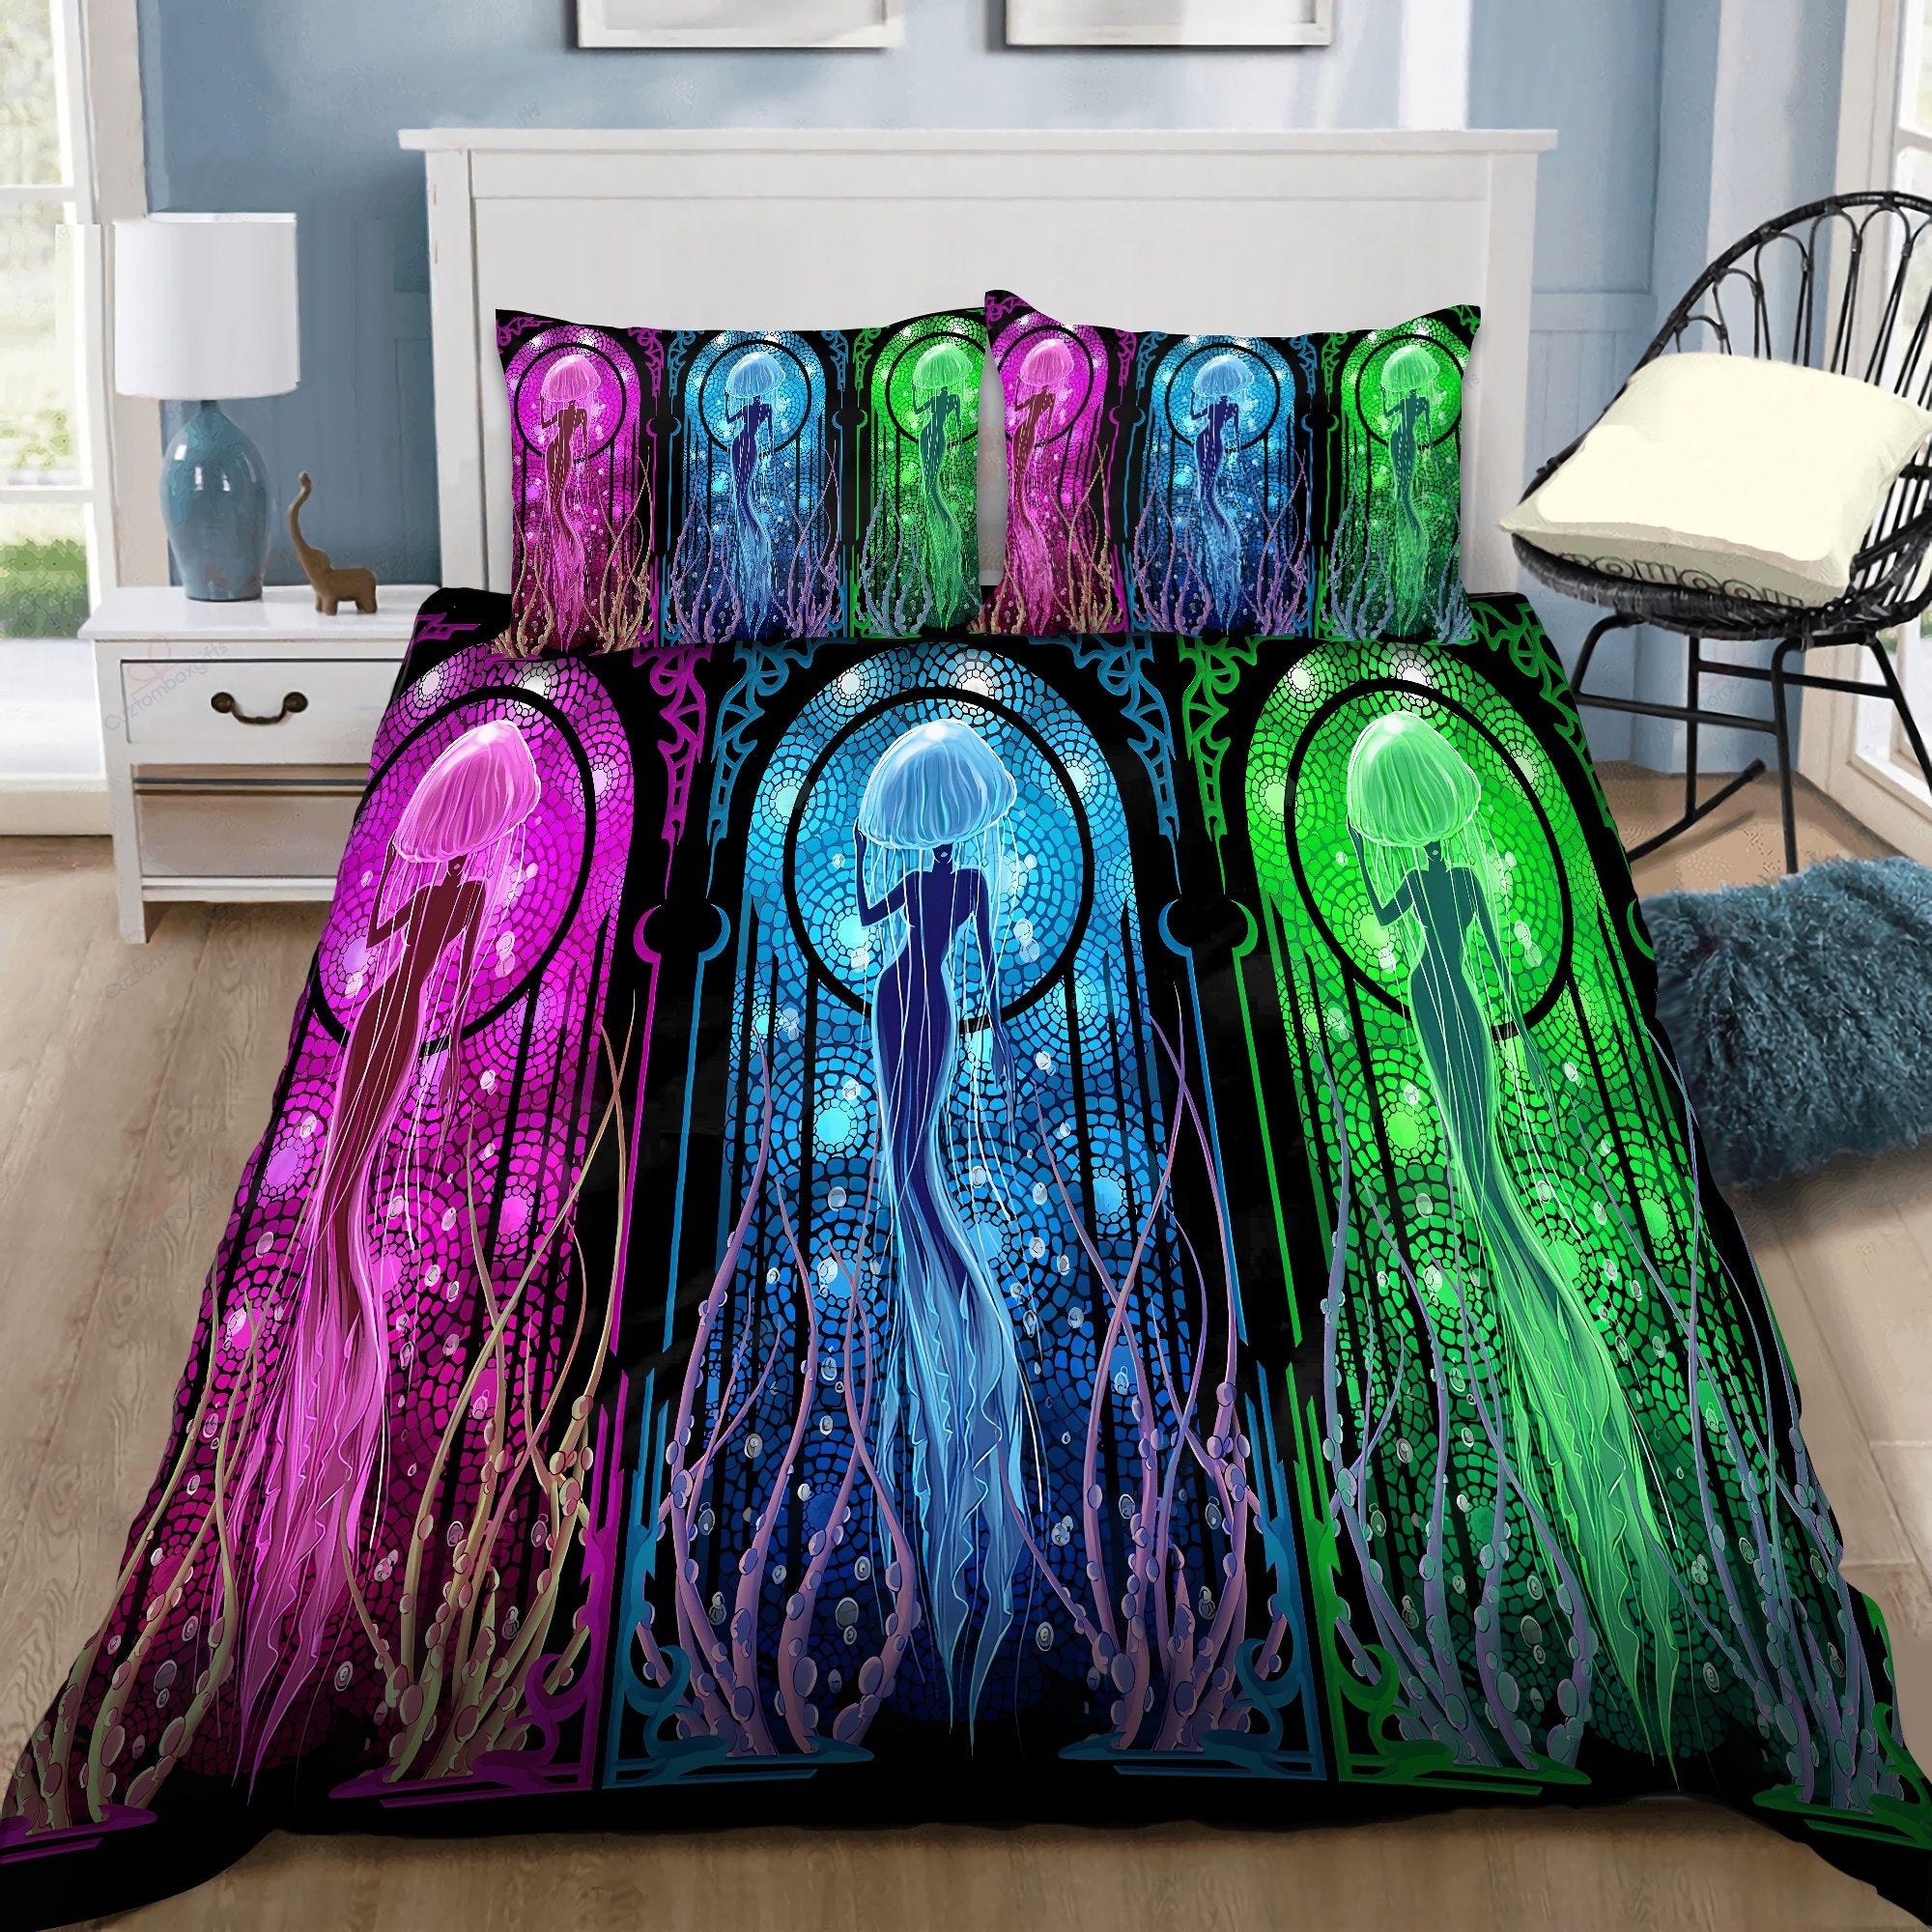 Jellyfish Mermaid Dream Bedding Set by SUN DQB07132010-Quilt-SUN-King-Vibe Cosy™